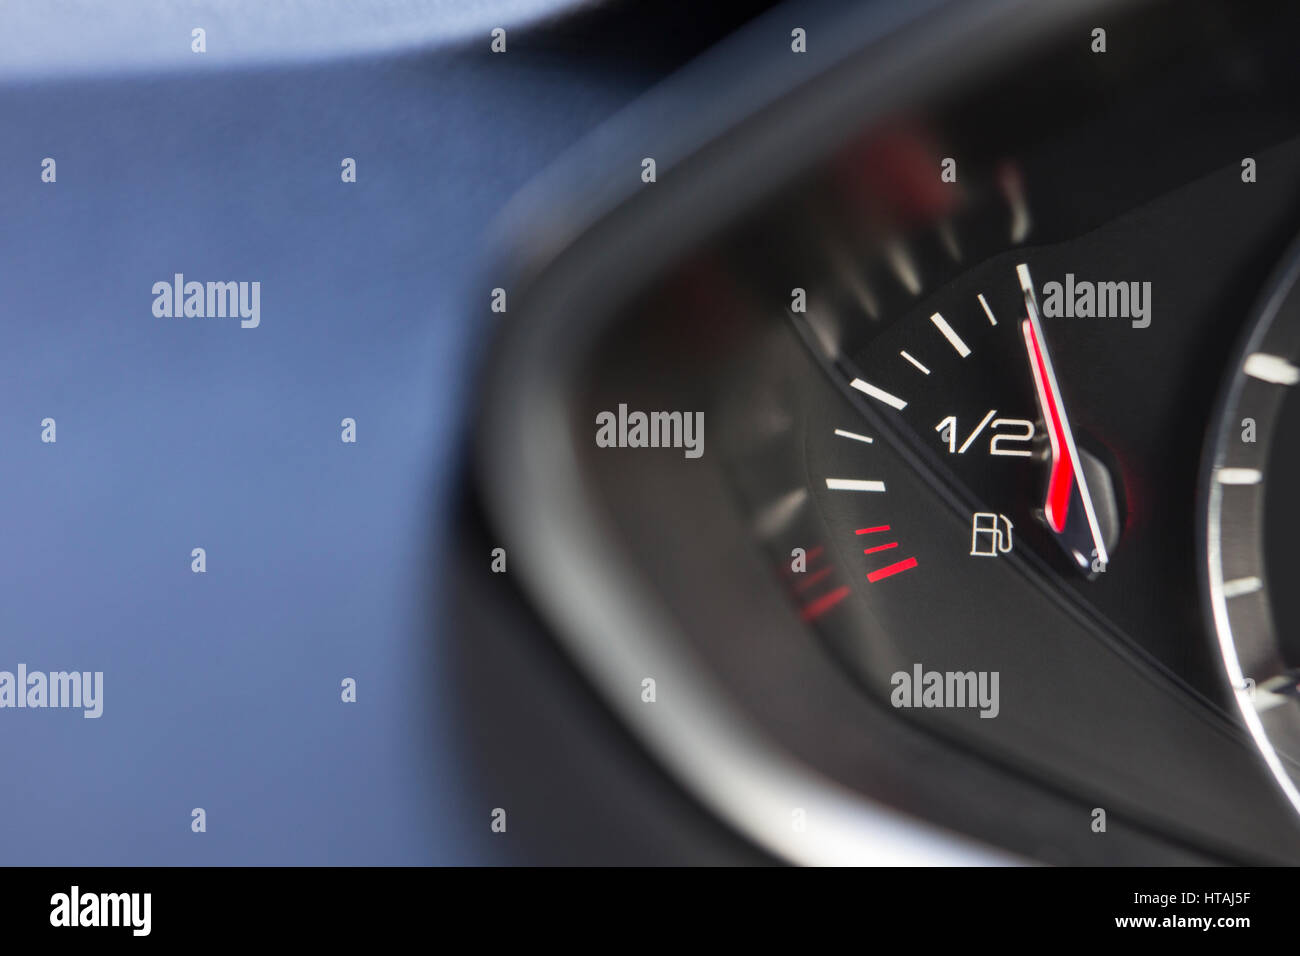 Close Up Of Fuel Gauge In Car Registering Full - Stock Image